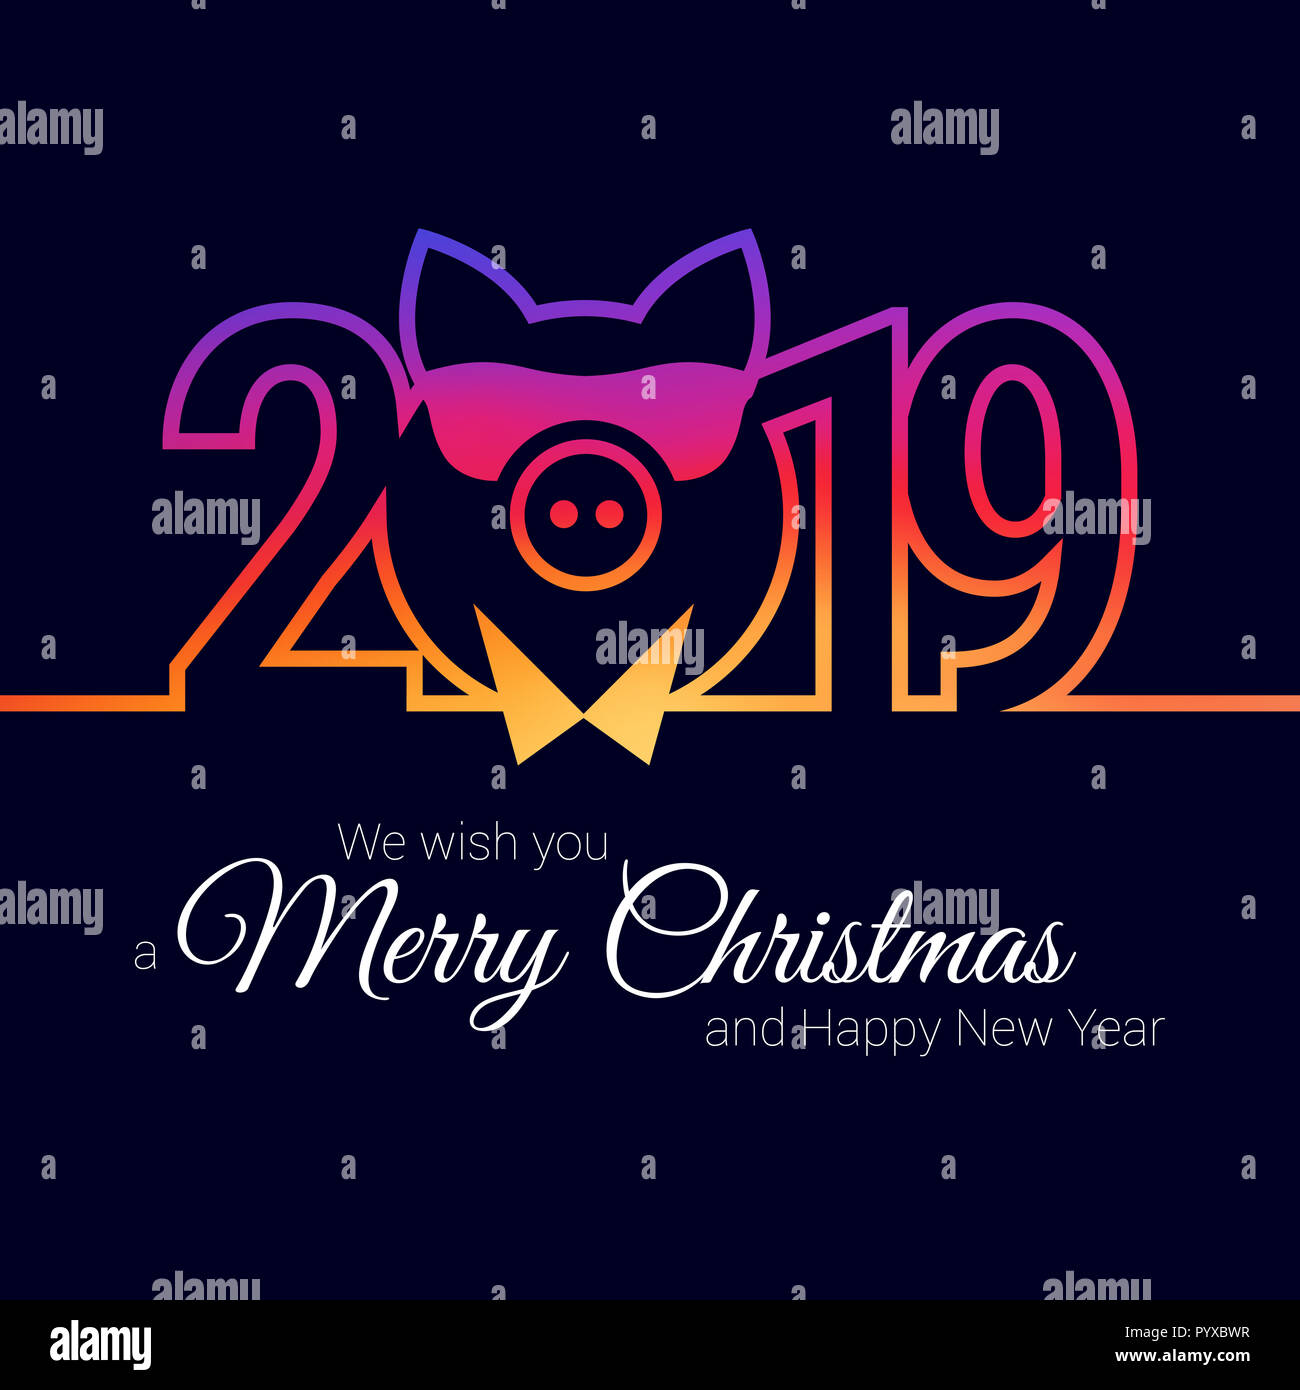 pig year 2019 stylish emblem christmas greeting card template merry christmas happy new year design elements resource for creating postcards cale